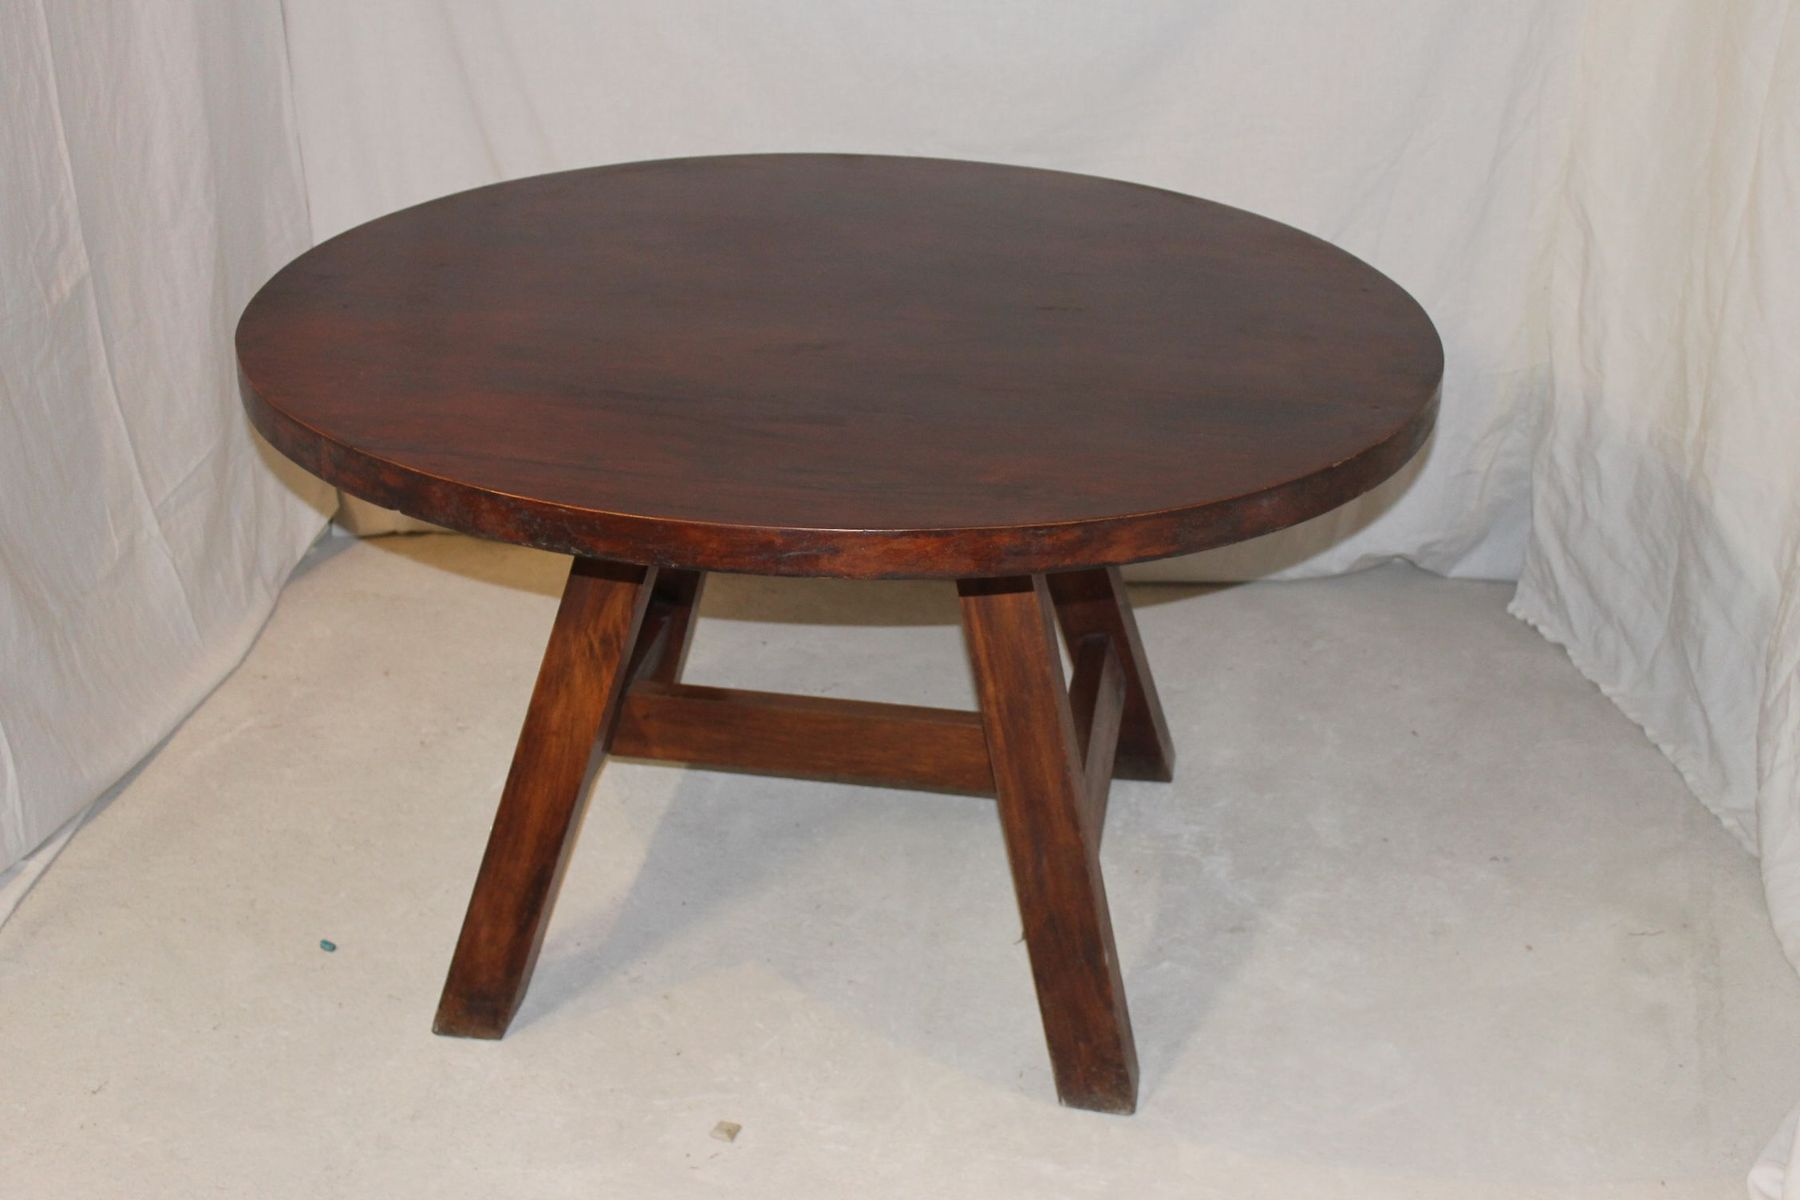 Round Italian Coffee Table 1979 For Sale At Pamono